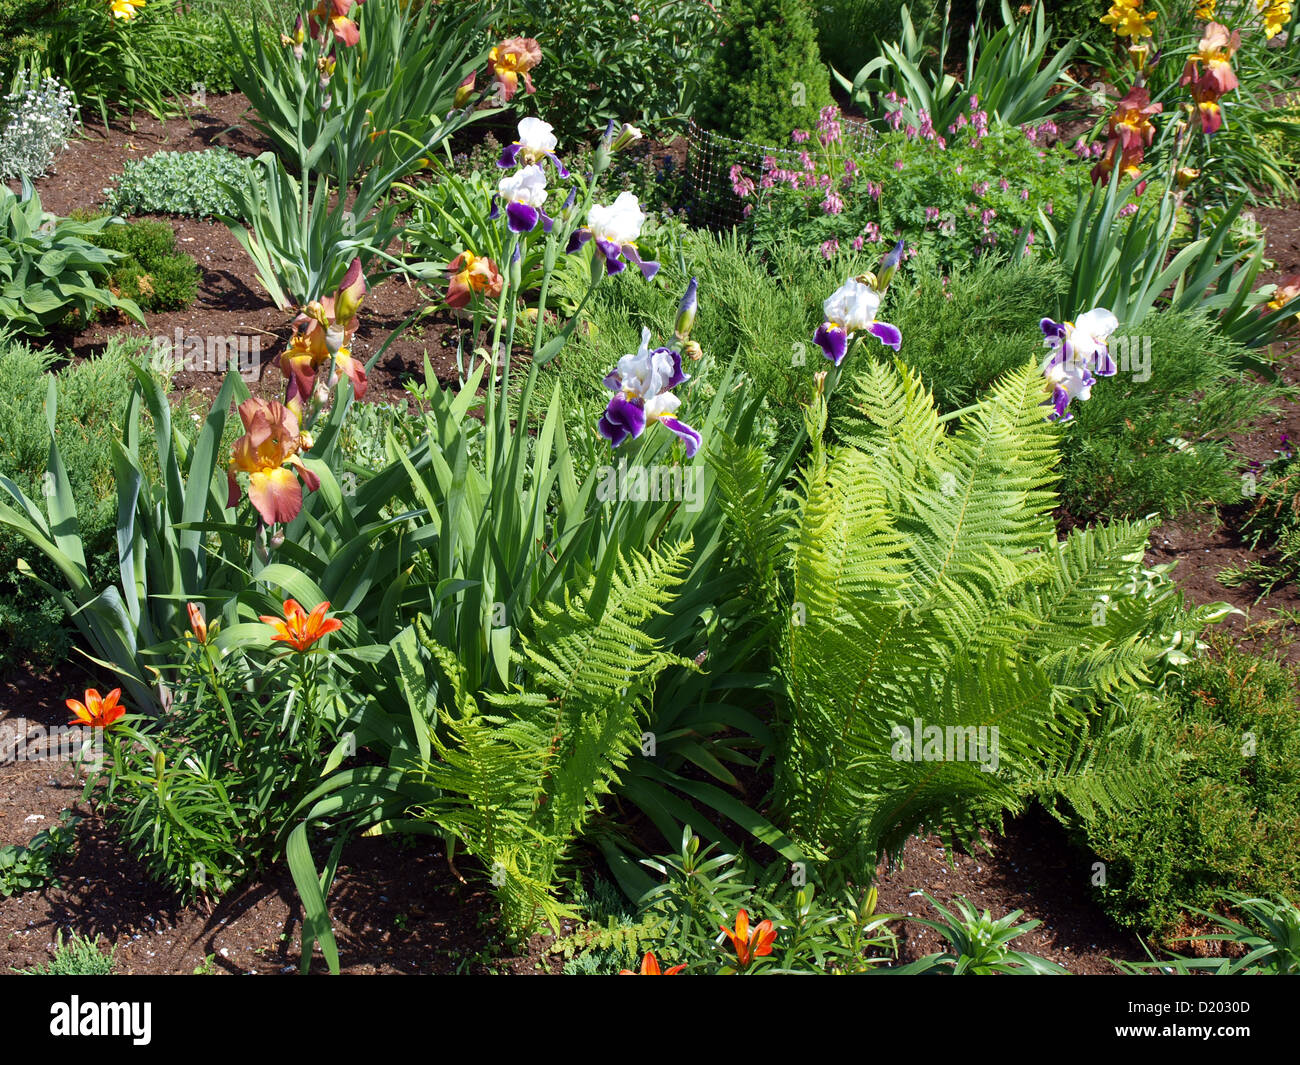 Flower bed with different kinds of flowers ferns crocuses lilies flower bed with different kinds of flowers ferns crocuses lilies izmirmasajfo